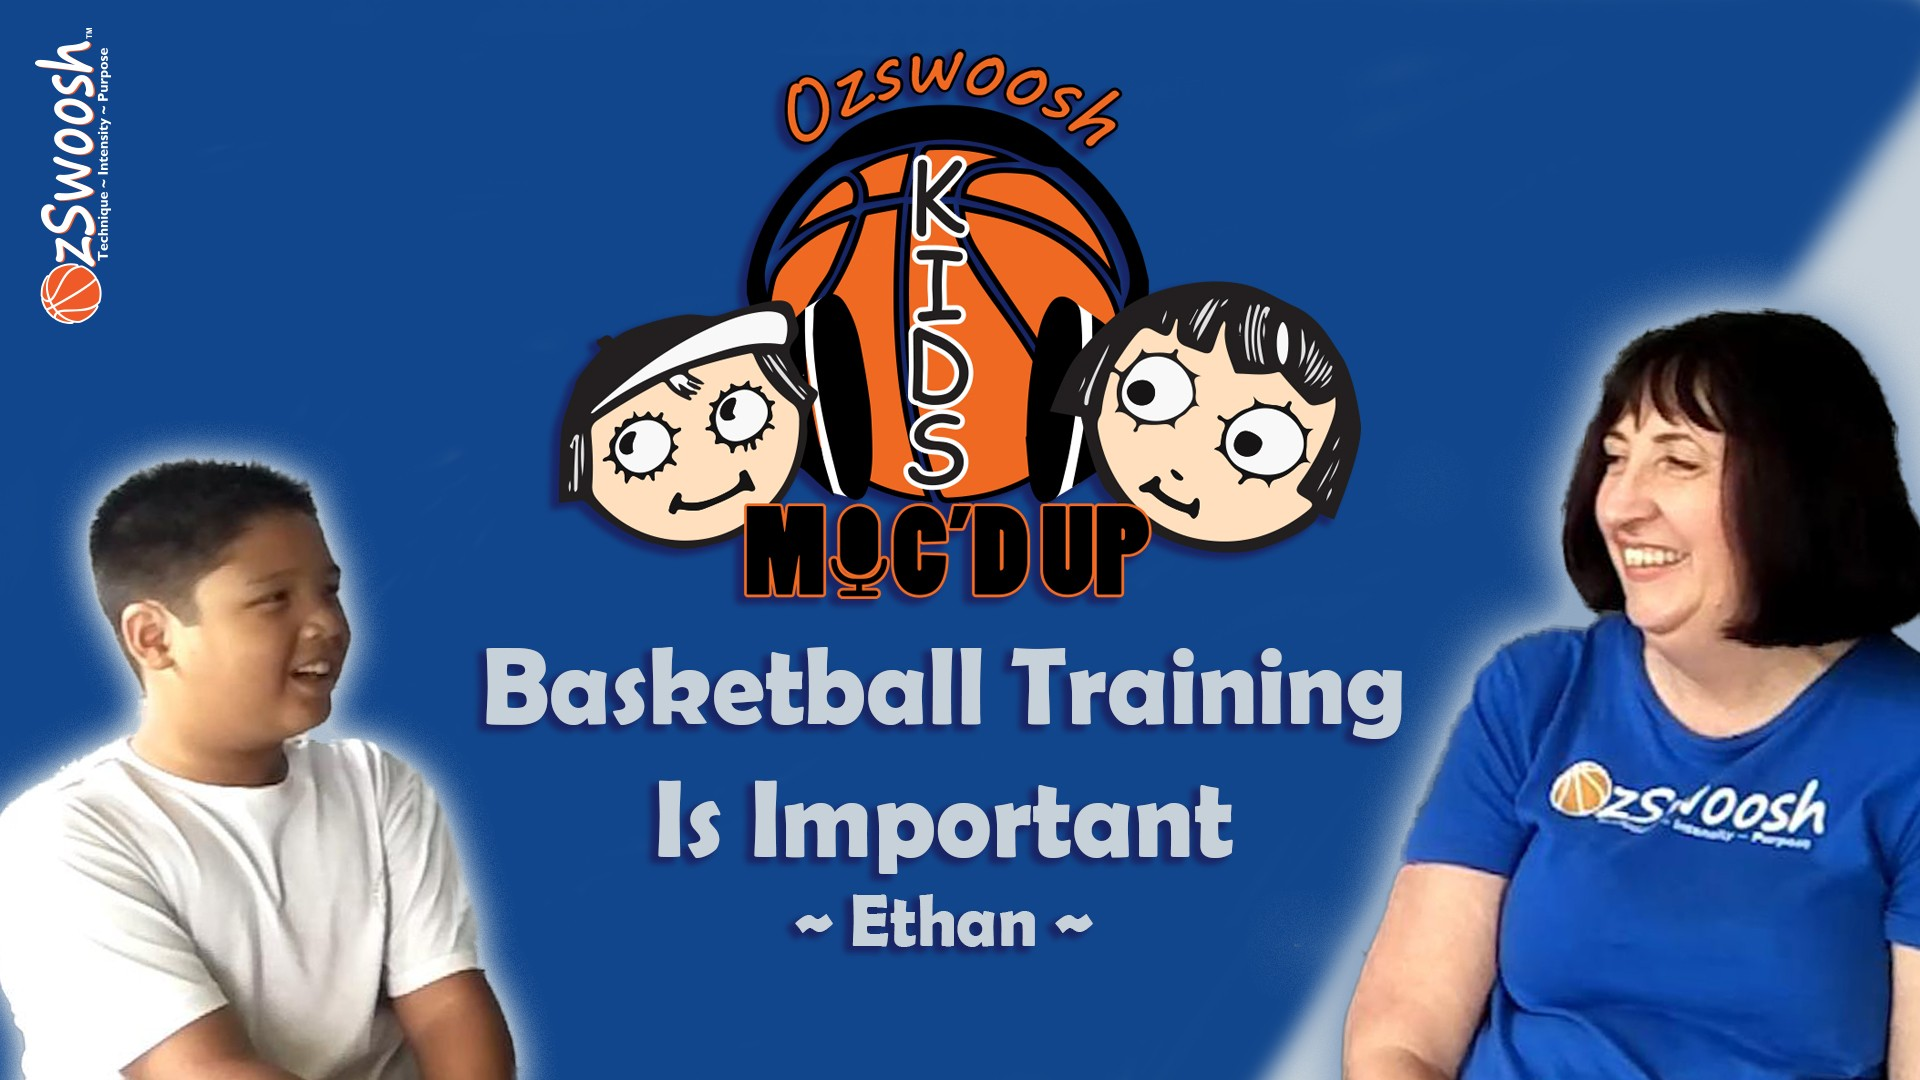 Basketball Training Is Important - OzSwoosh Rookie Ethan